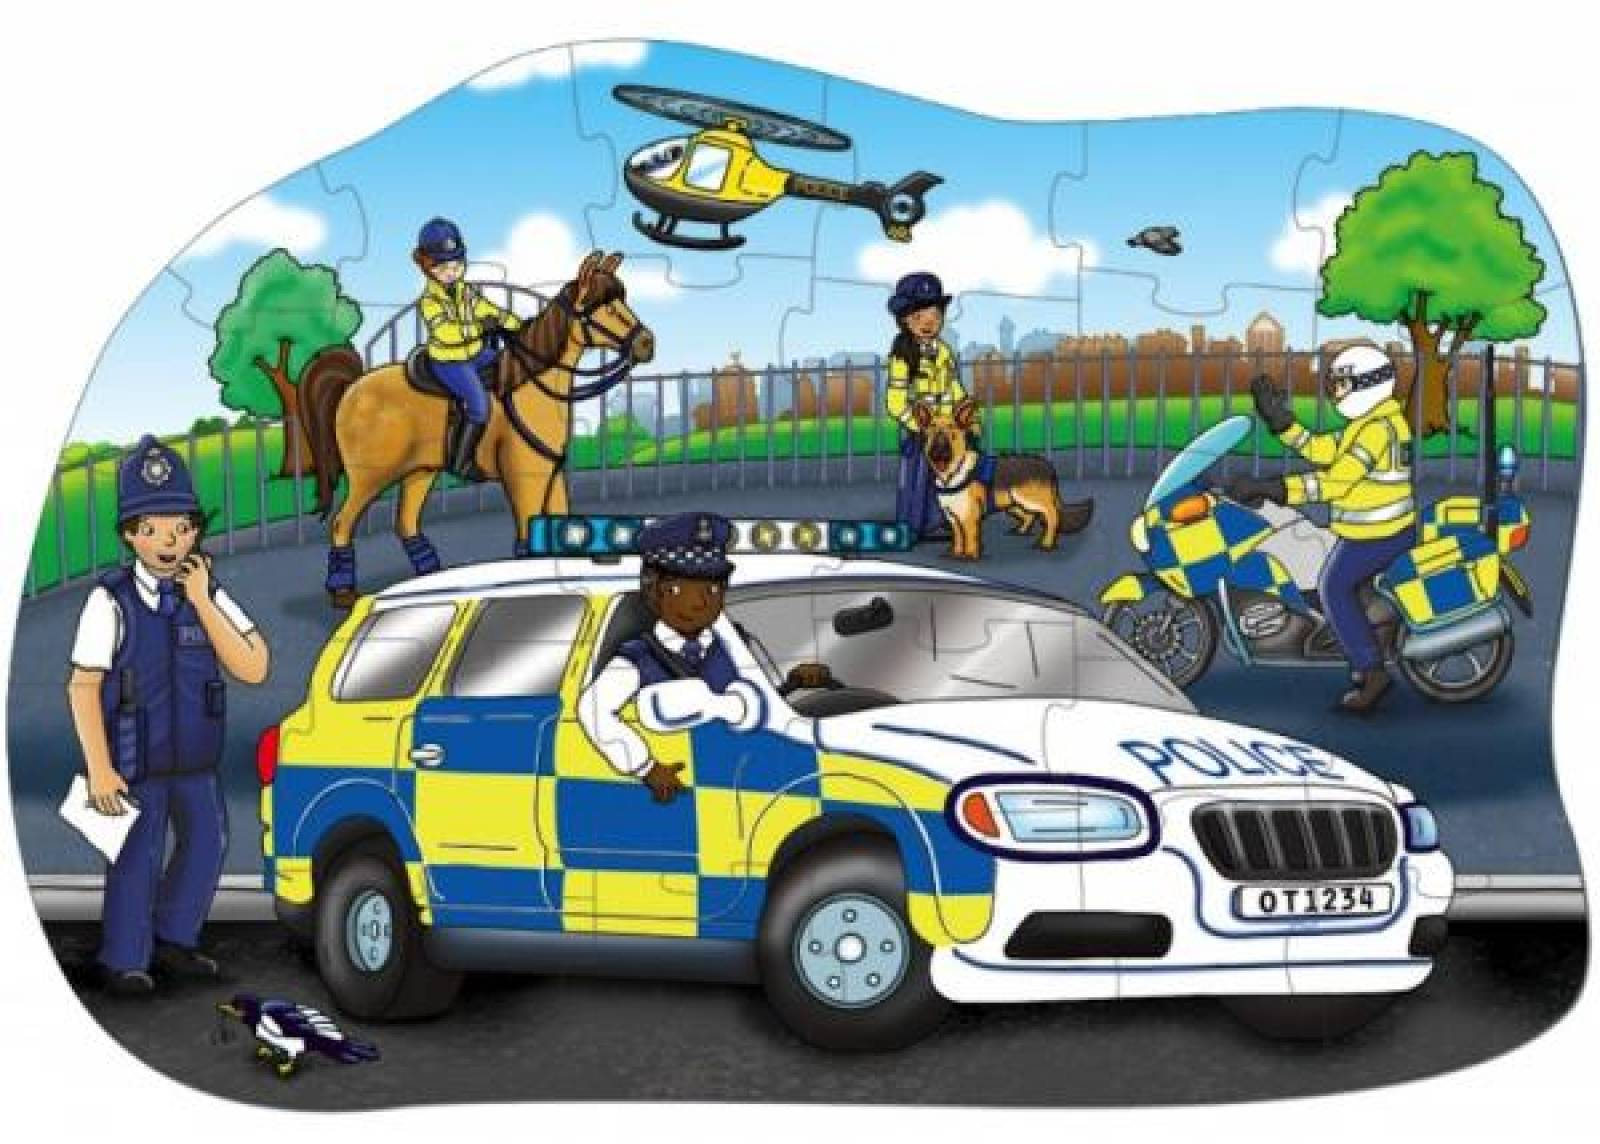 Big Police Car Puzzle Jigsaw By Orchard Toys 2-5yrs thumbnails